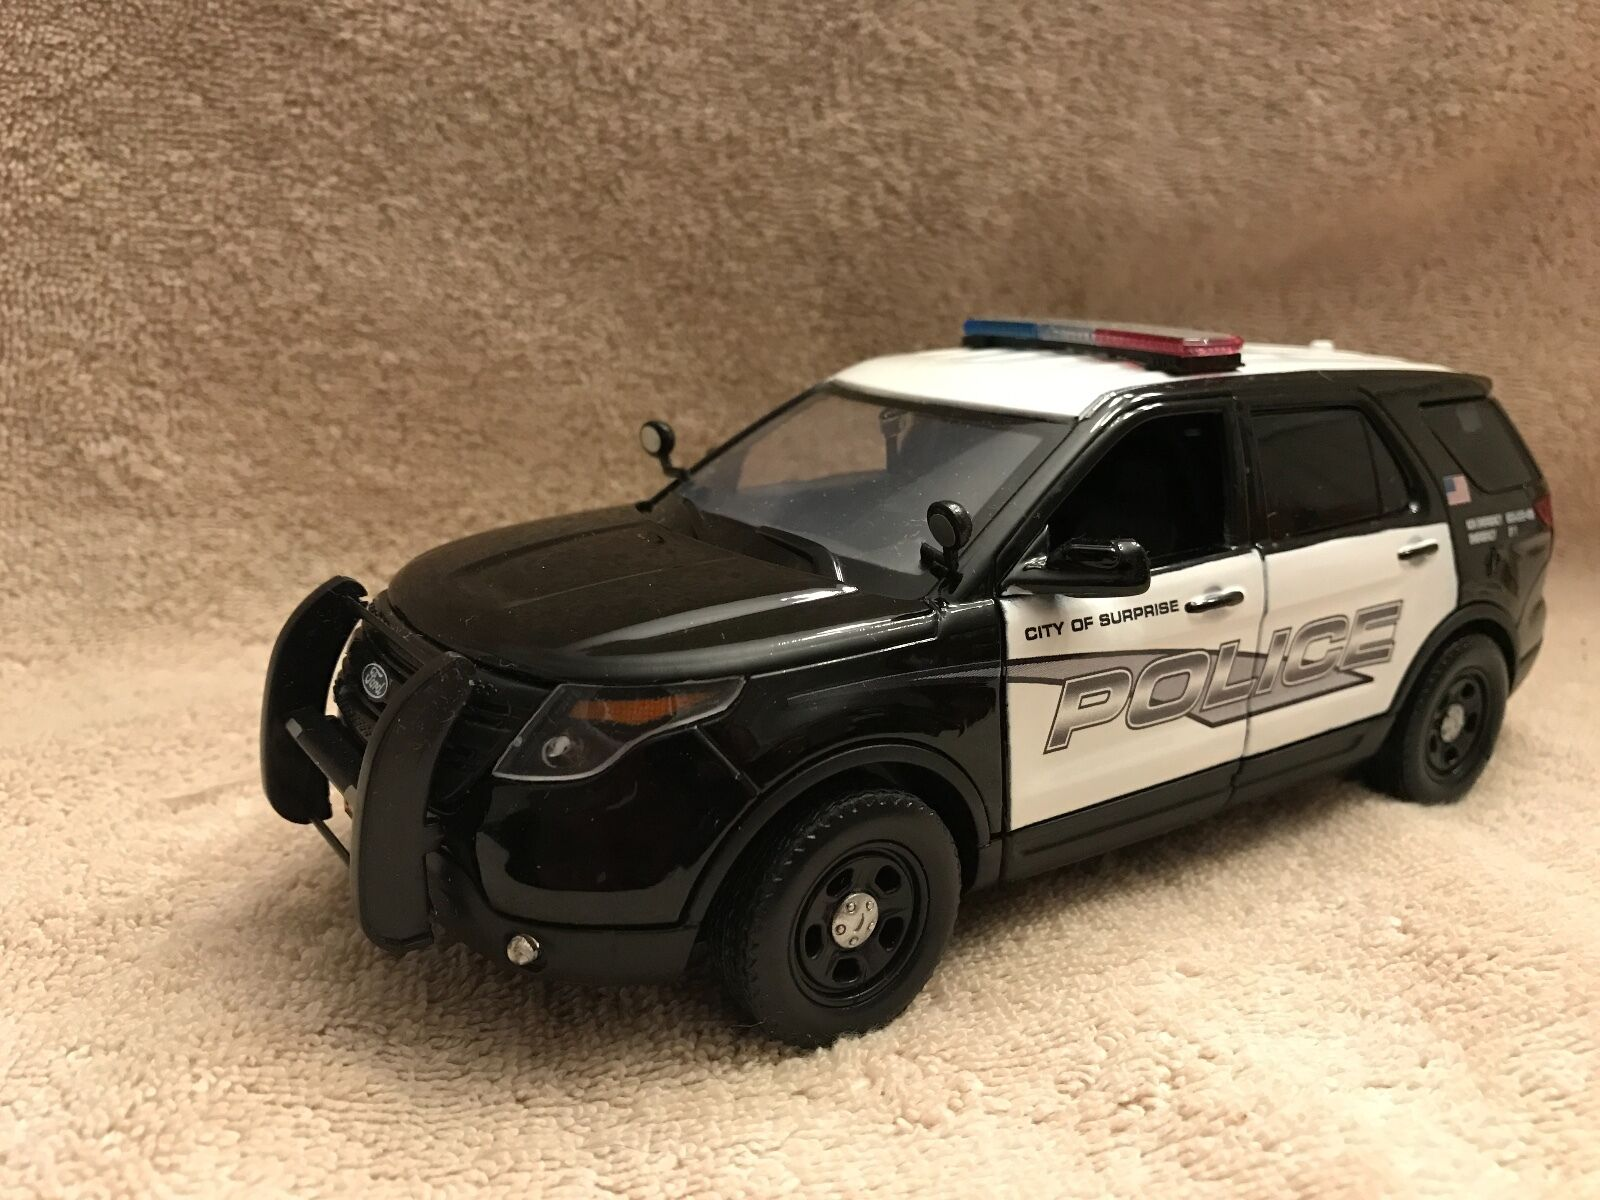 1/24 SCALE SUPRISE ARIZONA PD FD EXPLORER  UT MODEL WITH WORKING LIGHTS/SIREN